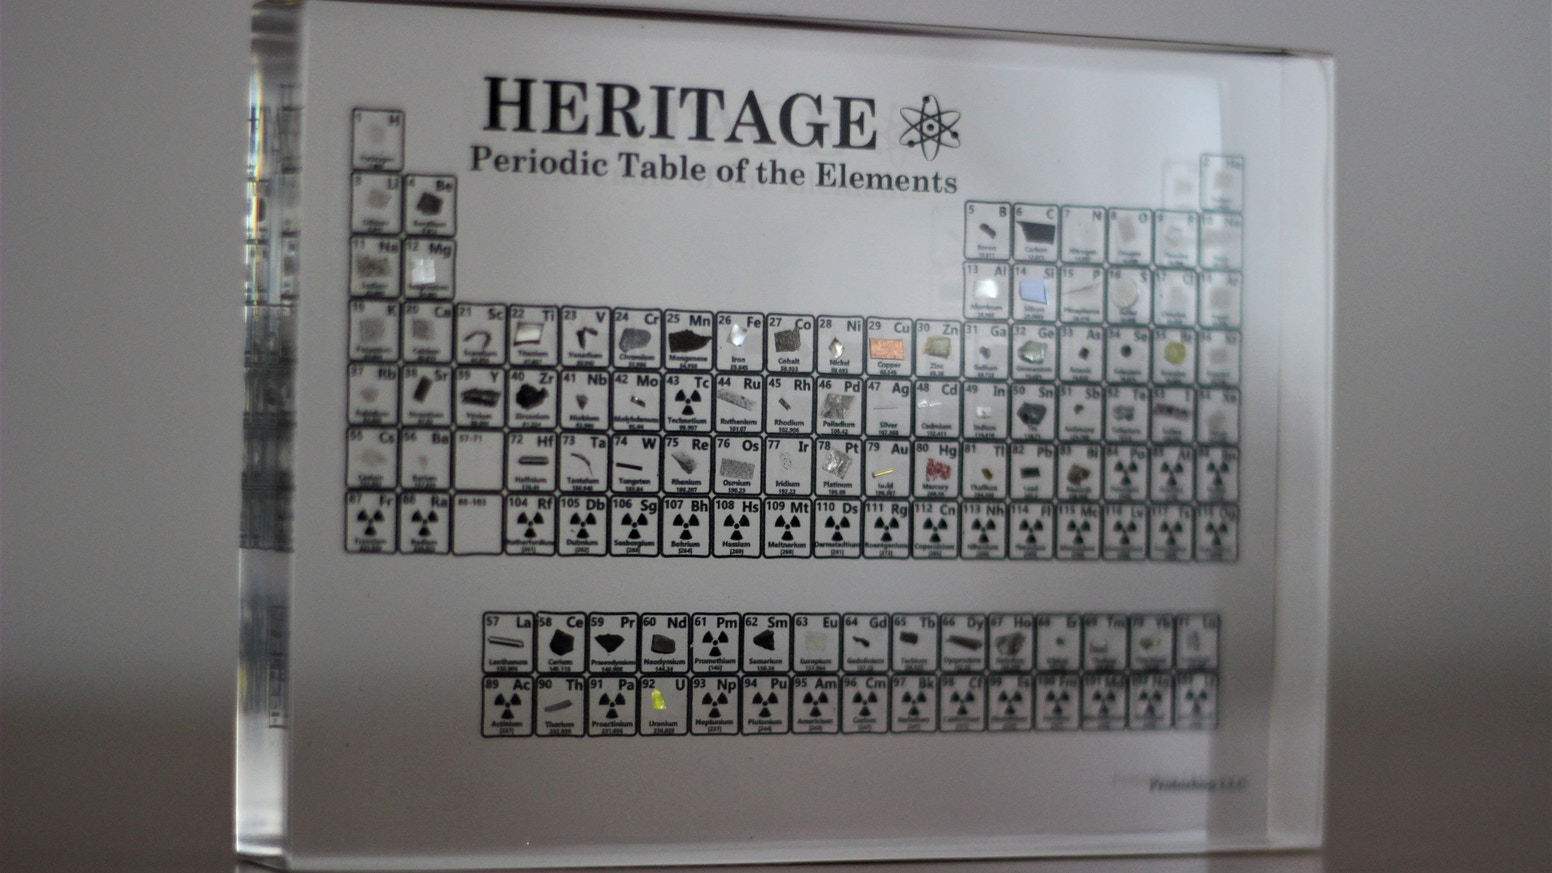 The Heritage Periodic Table By Cory James Marriott Update On April